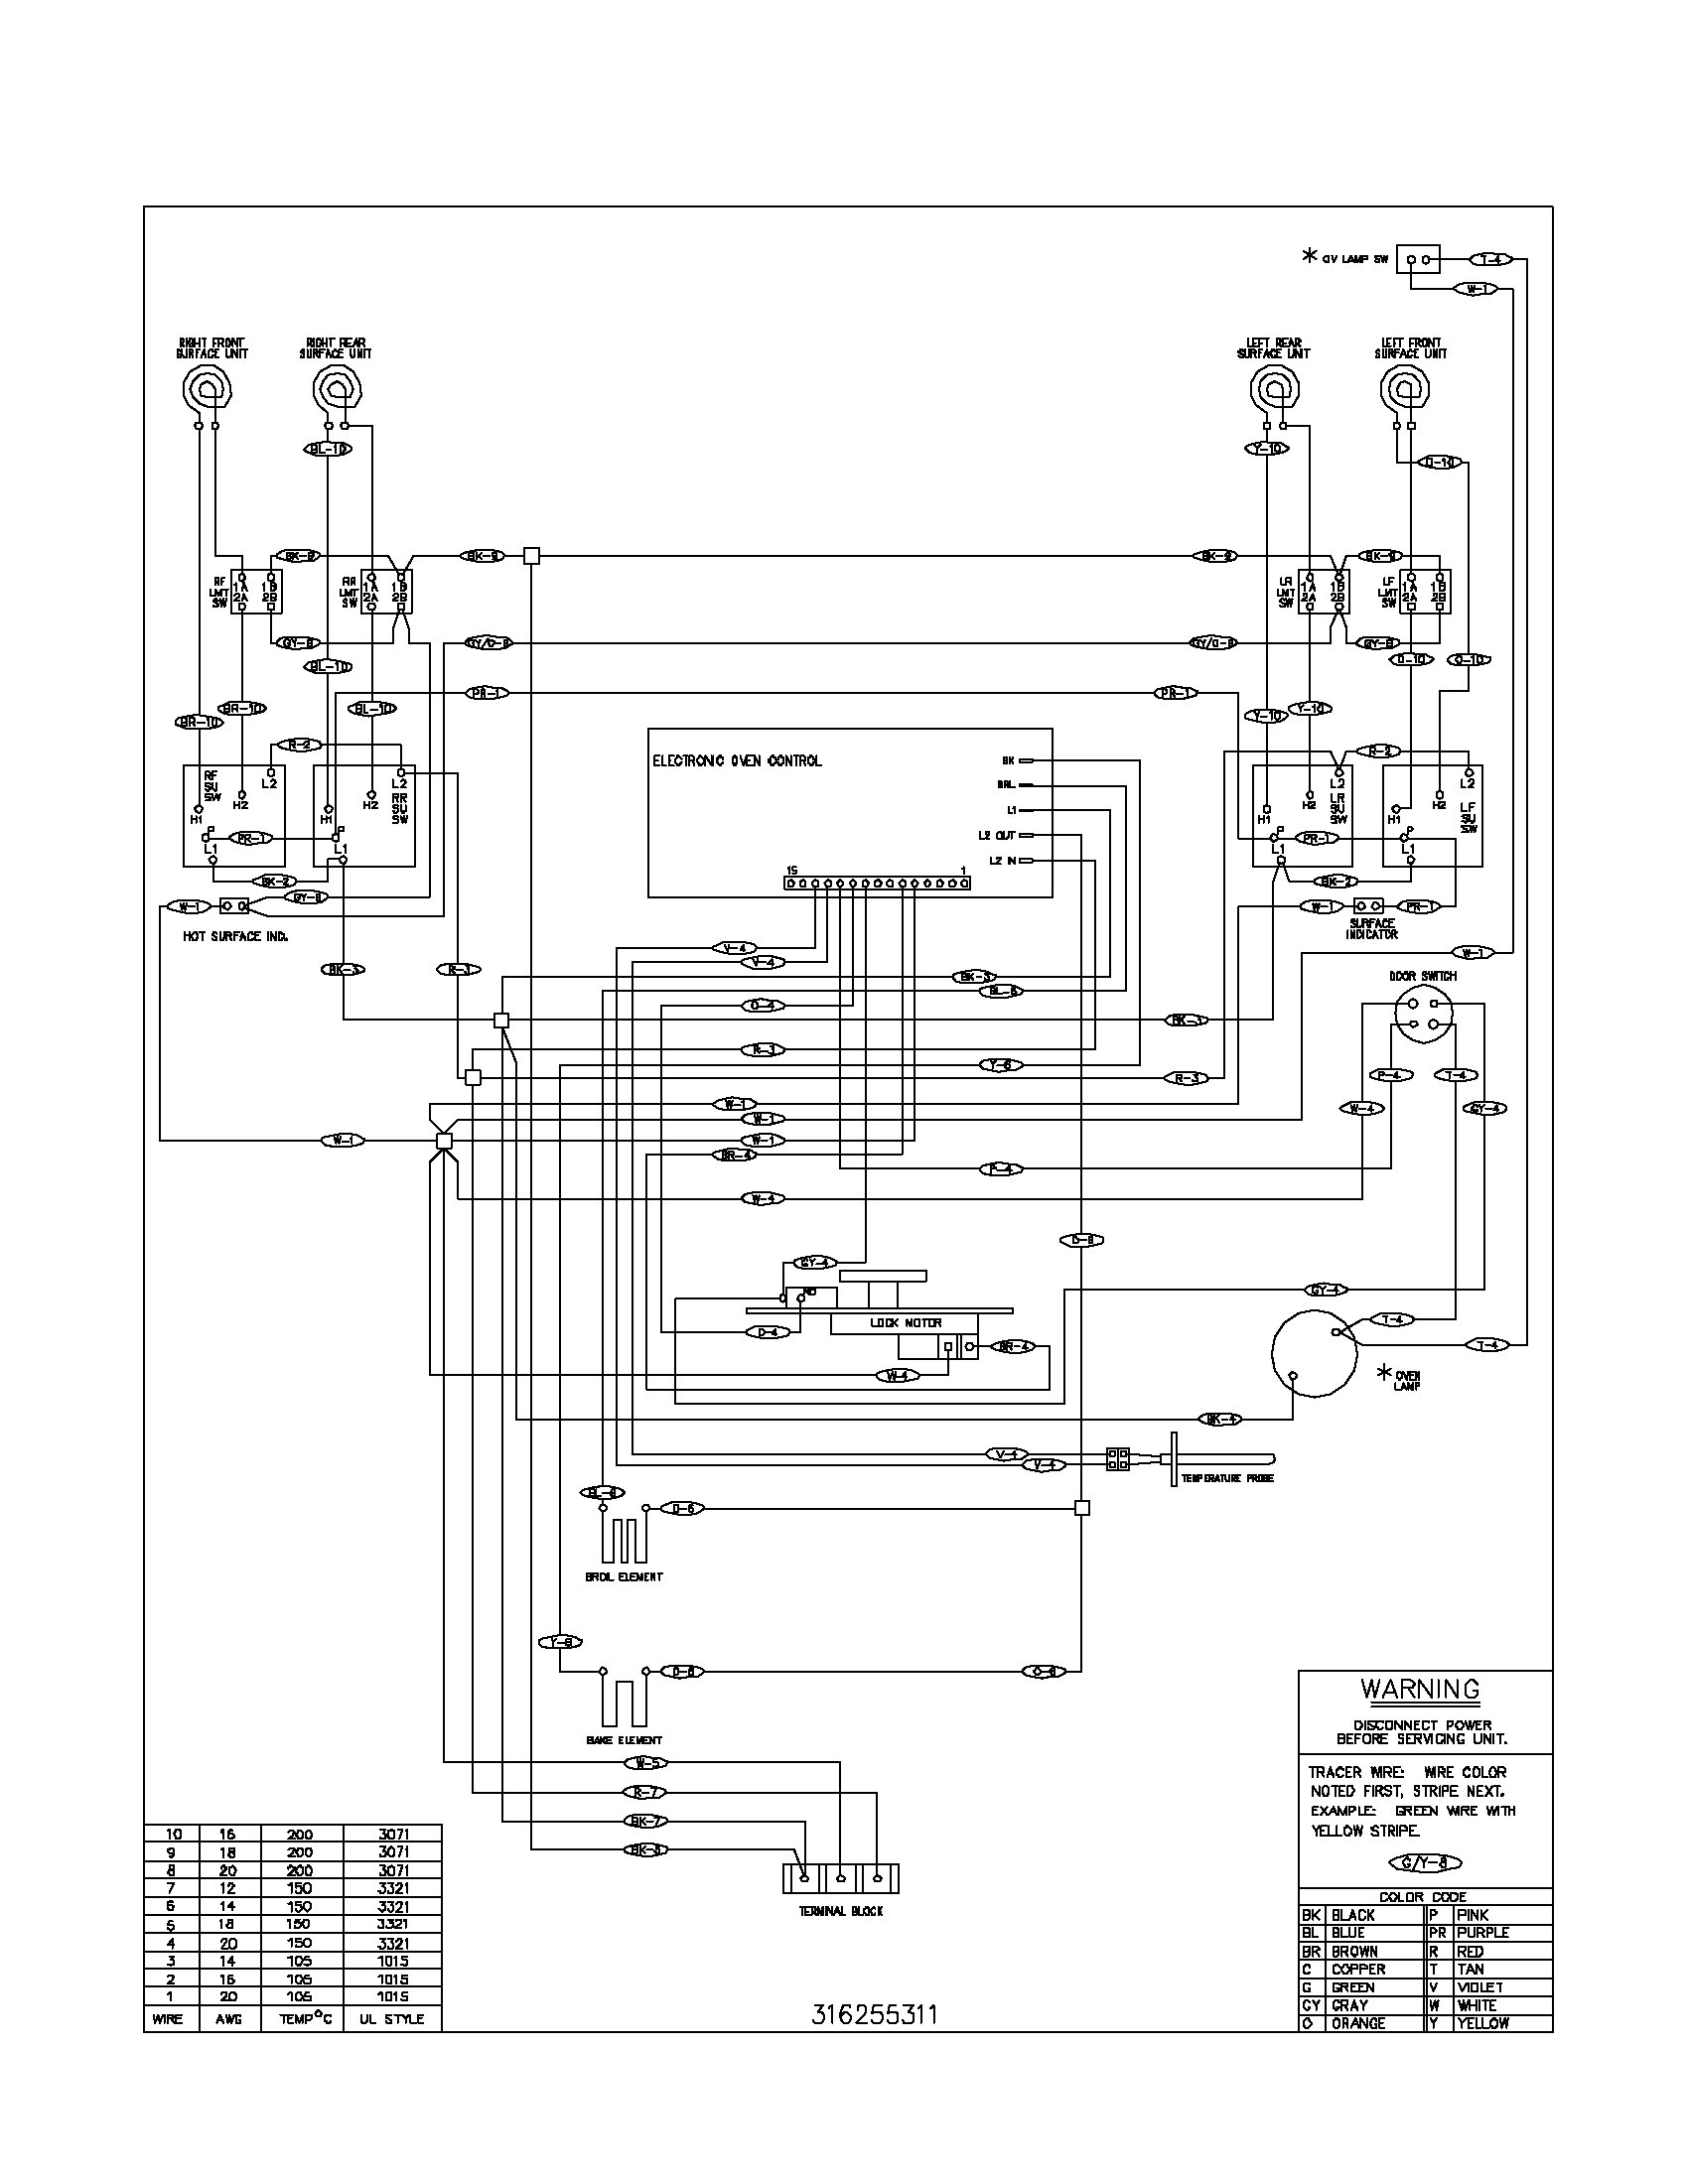 electric oven thermostat wiring diagram Download-Wiring Diagram Electric Oven New Oven Thermostat Wiring Diagram Copy 6-h